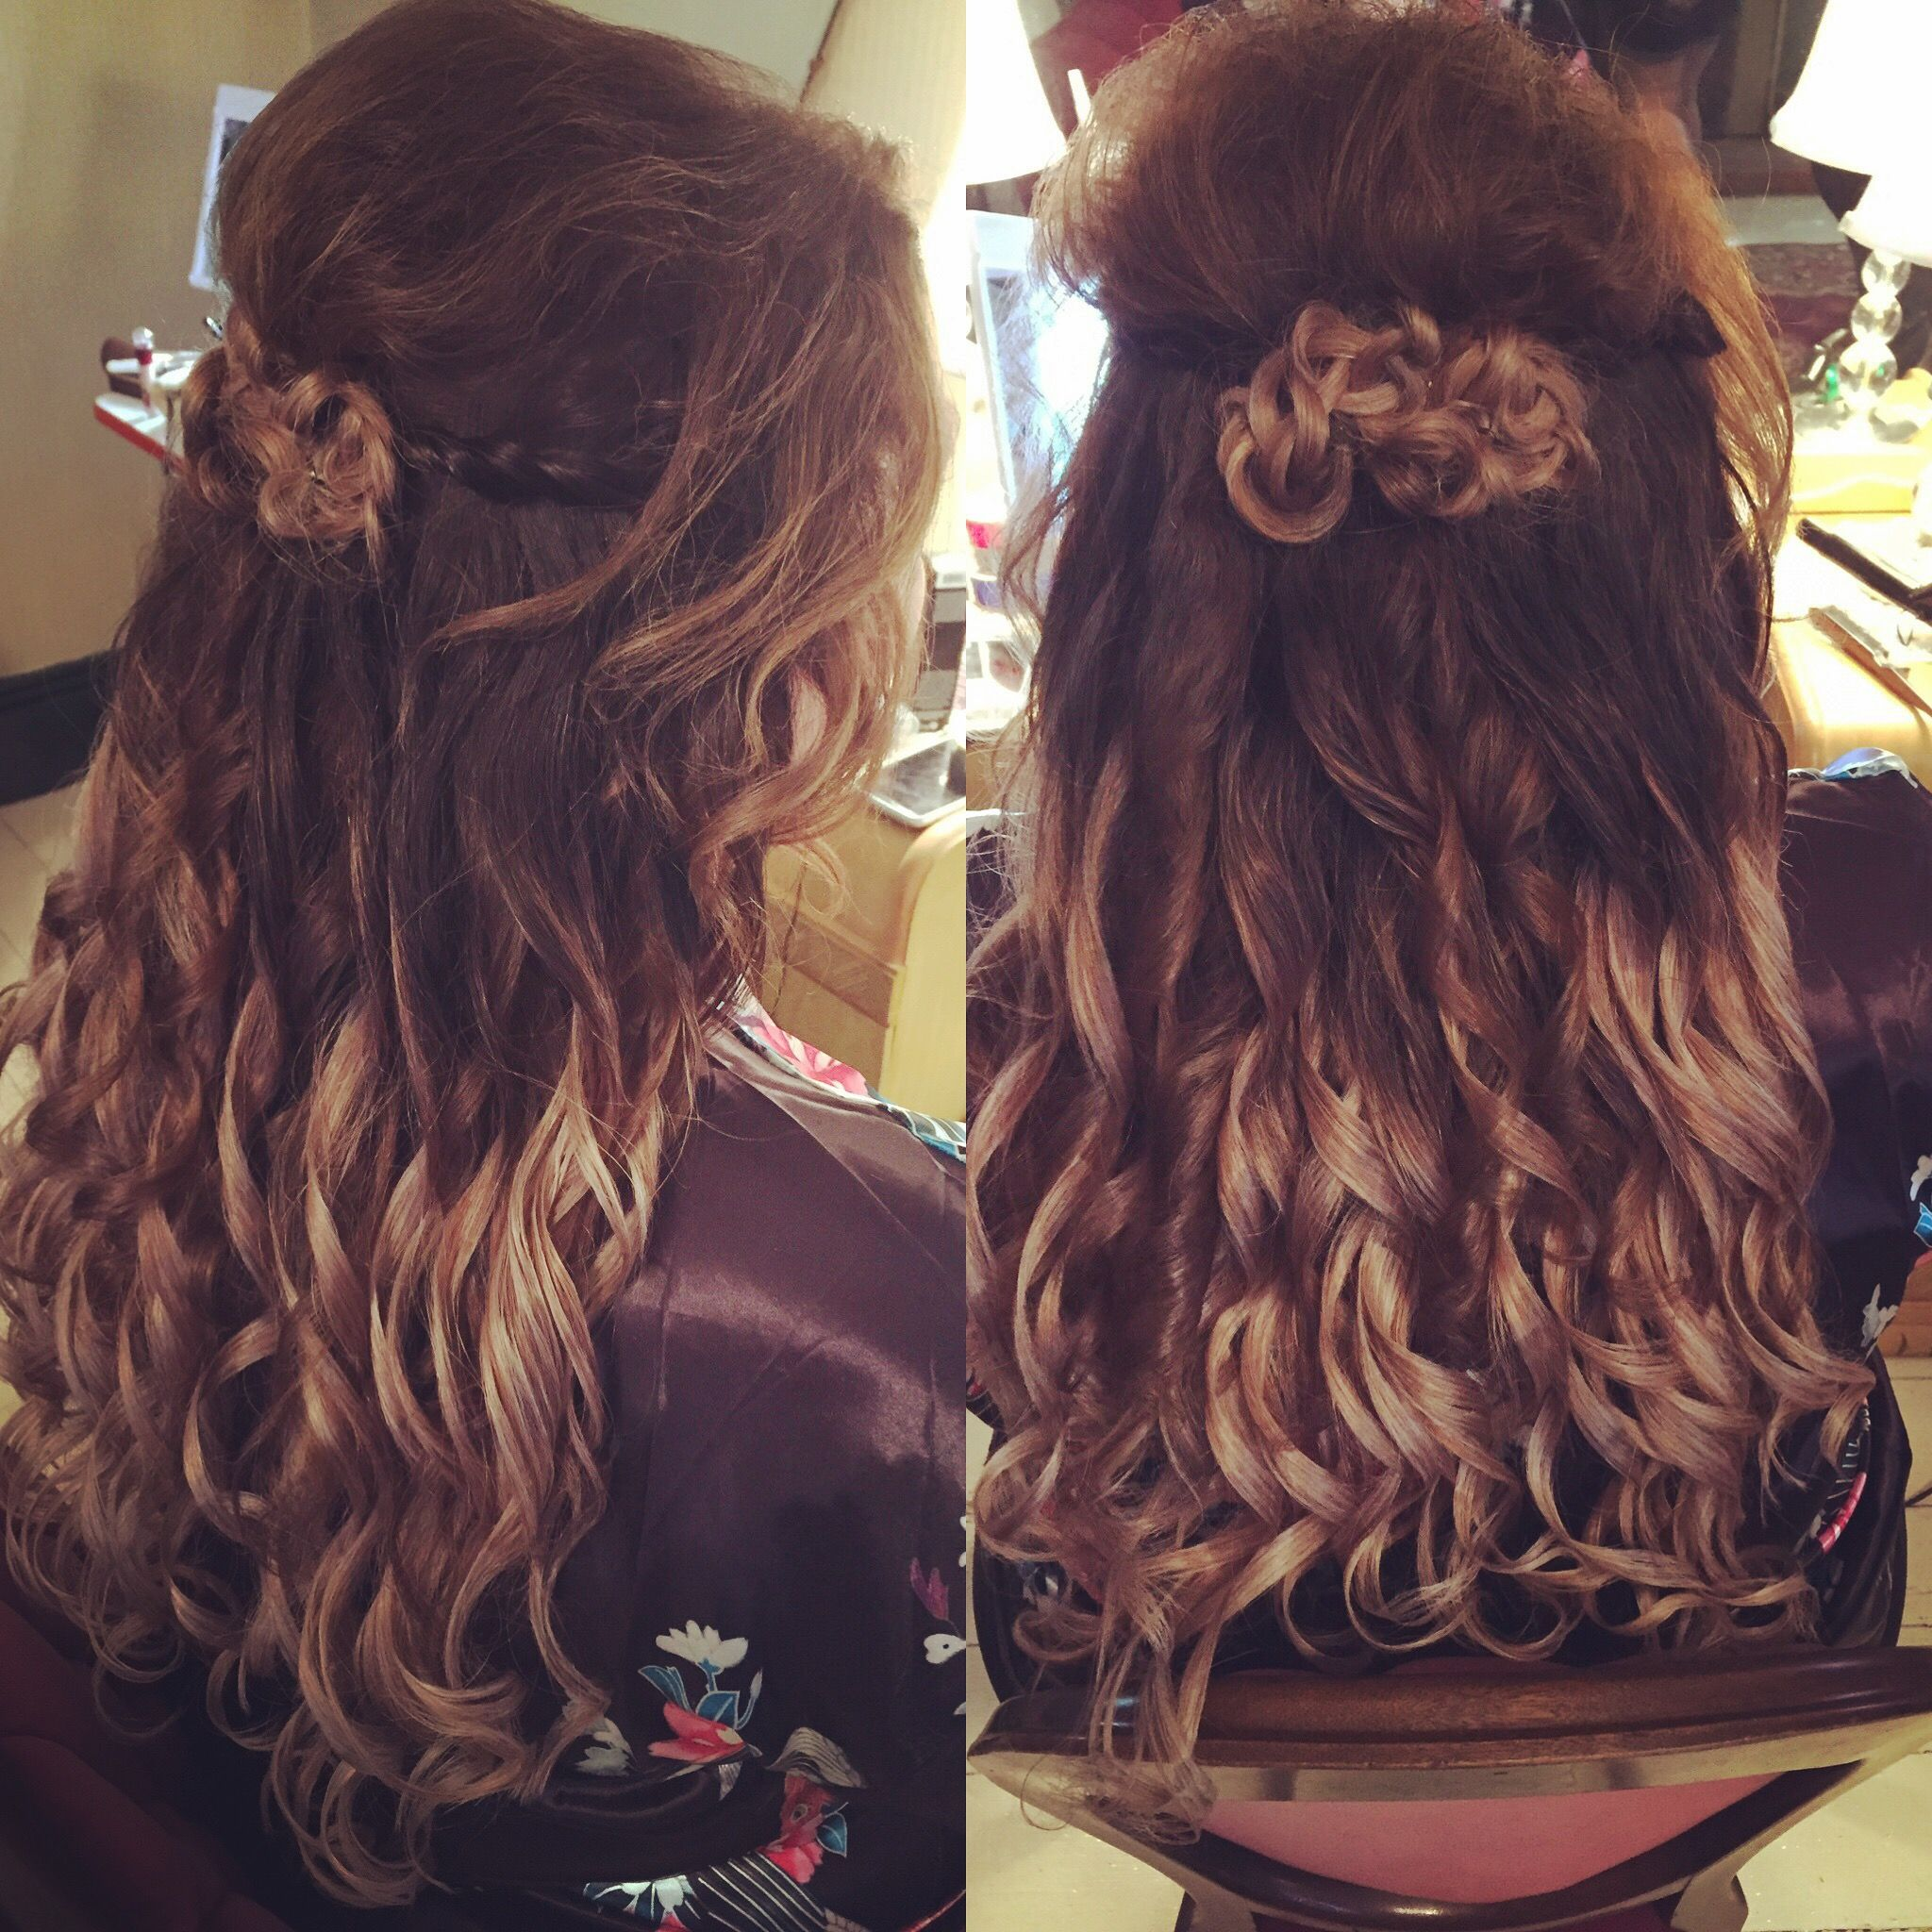 Celtic Knot Wedding Hair Bridesmaids Hair Bombshell Beauty Parlor Ironton Mo Beauty Bridesmaid Hair Bombshell Beauty